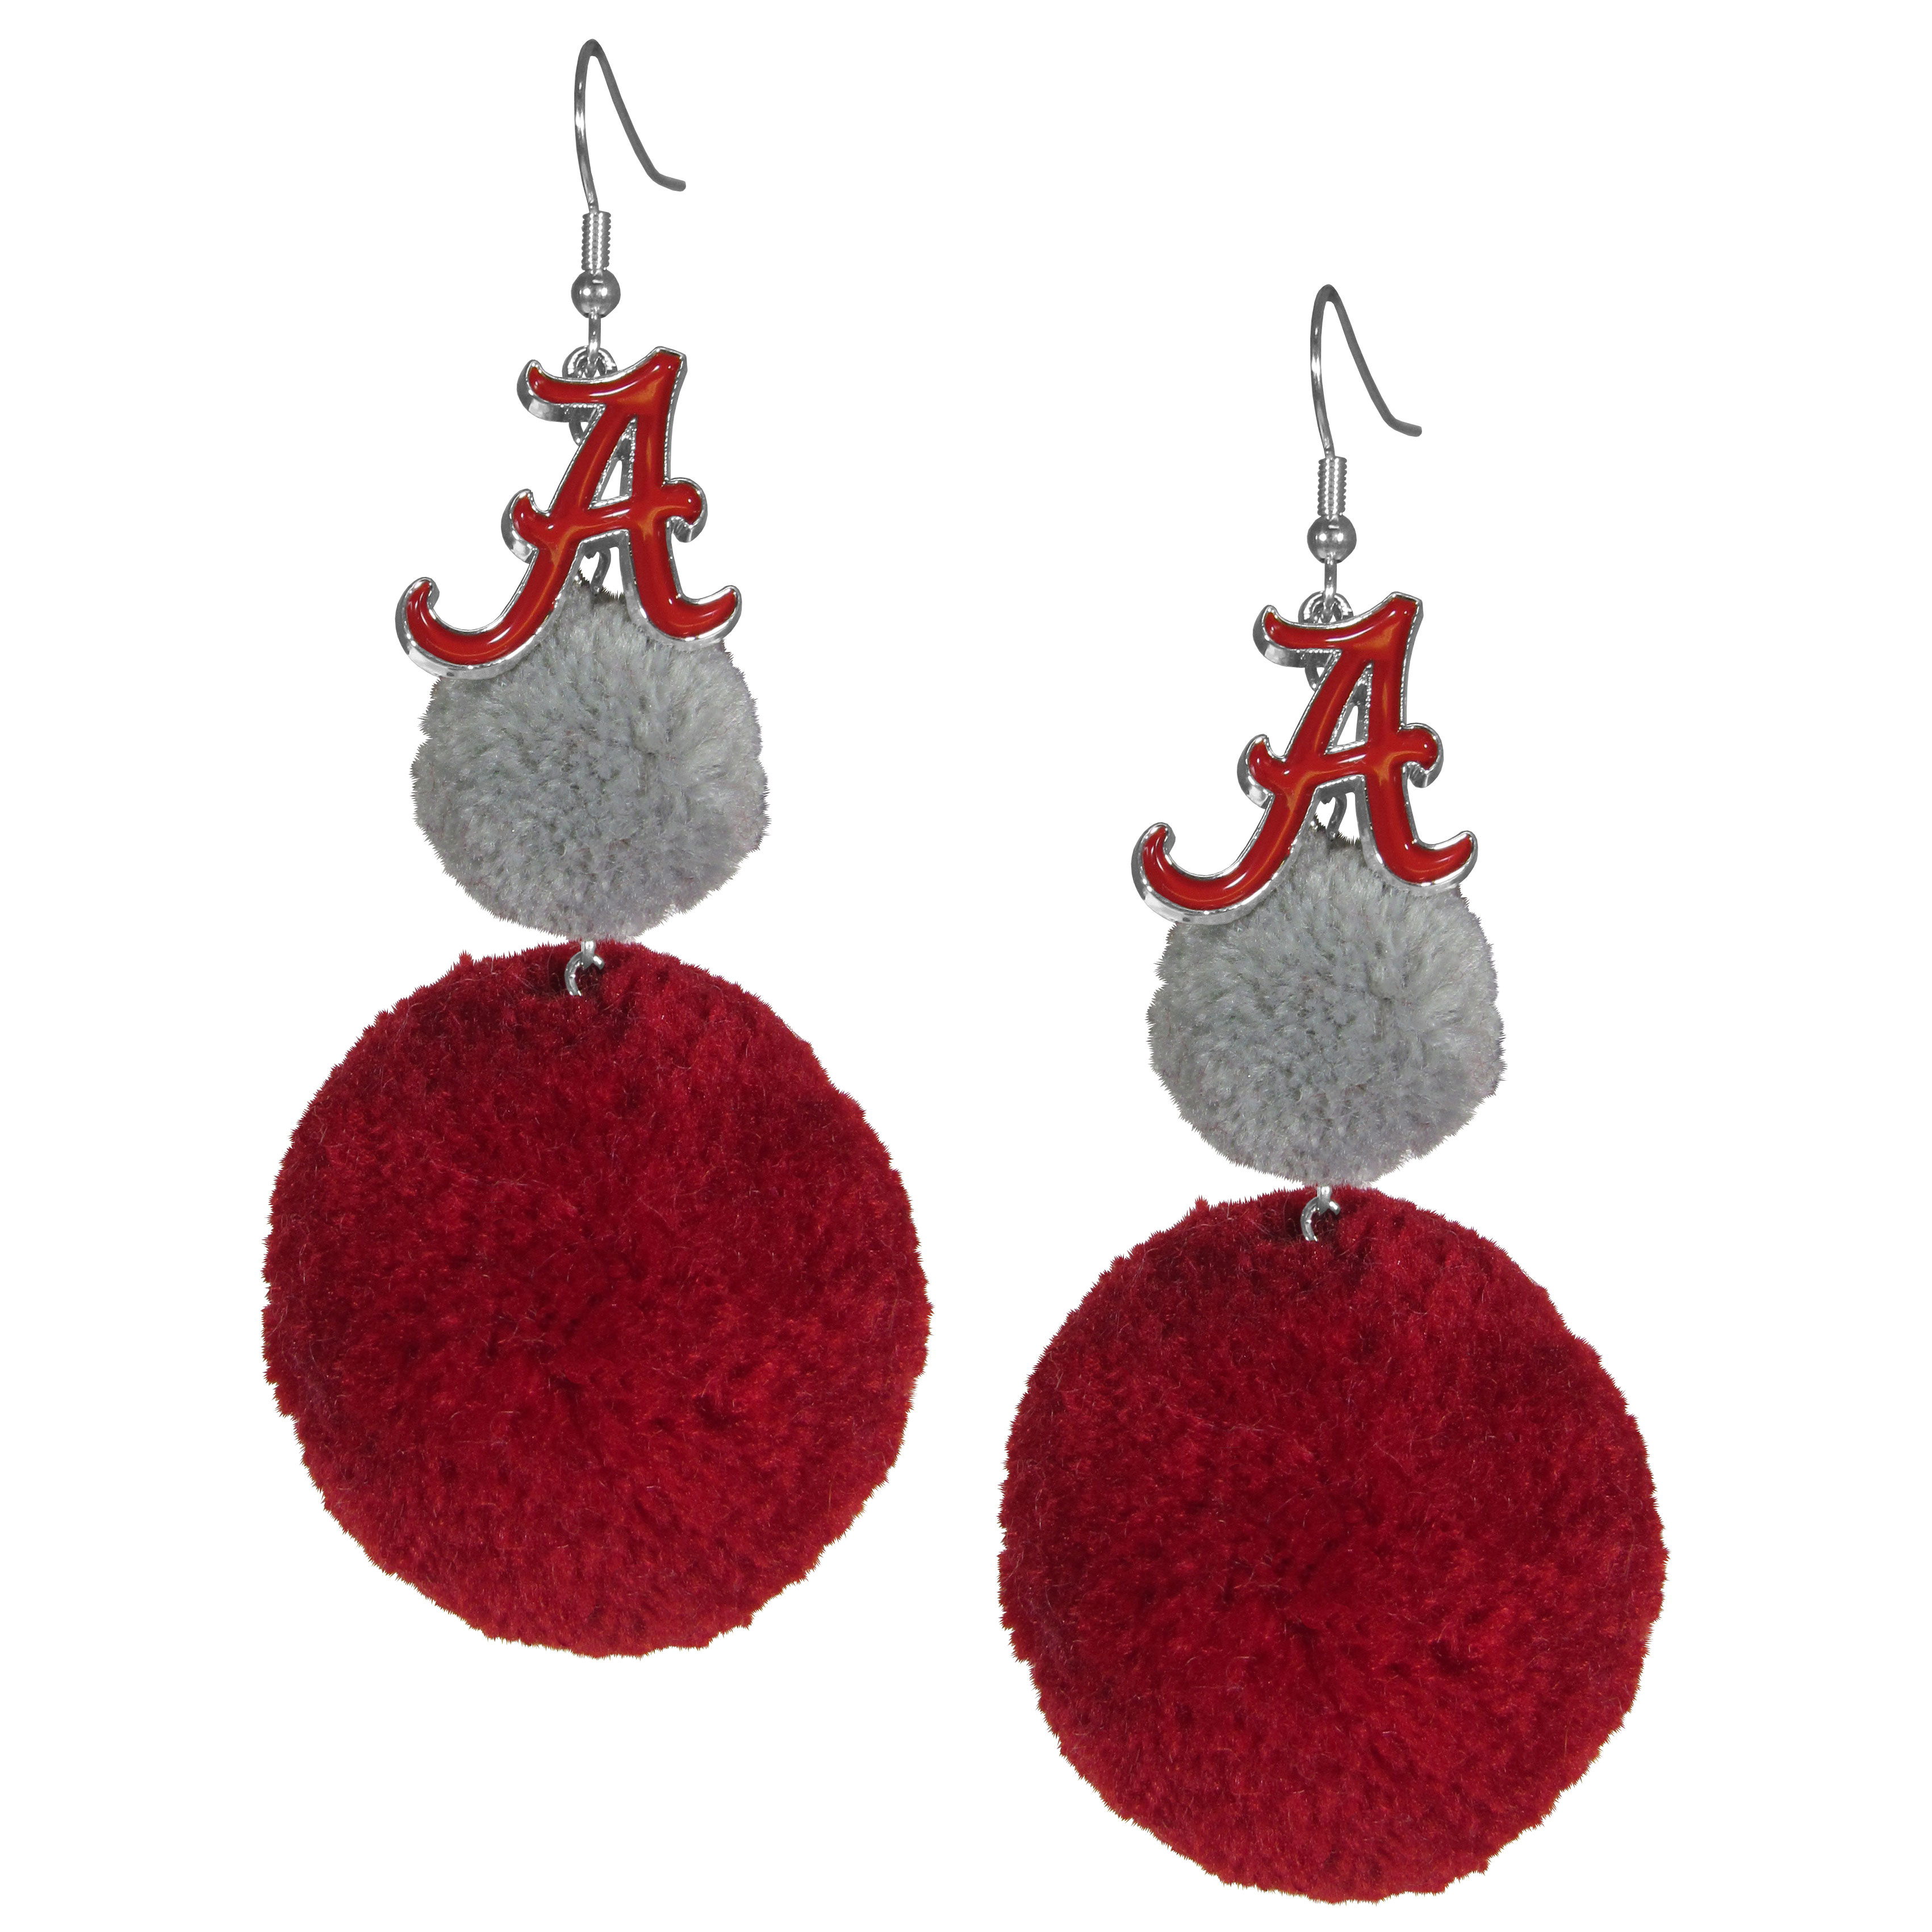 Alabama Crimson Tide Pom Pom Earrings - These fun and bold earrings are a game day must! The earrings feature a metal Alabama Crimson Tide charm with enameled color details that hangs above to colorful pom pom charms. The largest pom is 1.5 inches round for, the earrings hang at 3.5 inches long. The fishhook posts are nickel free and hypoallergenic.